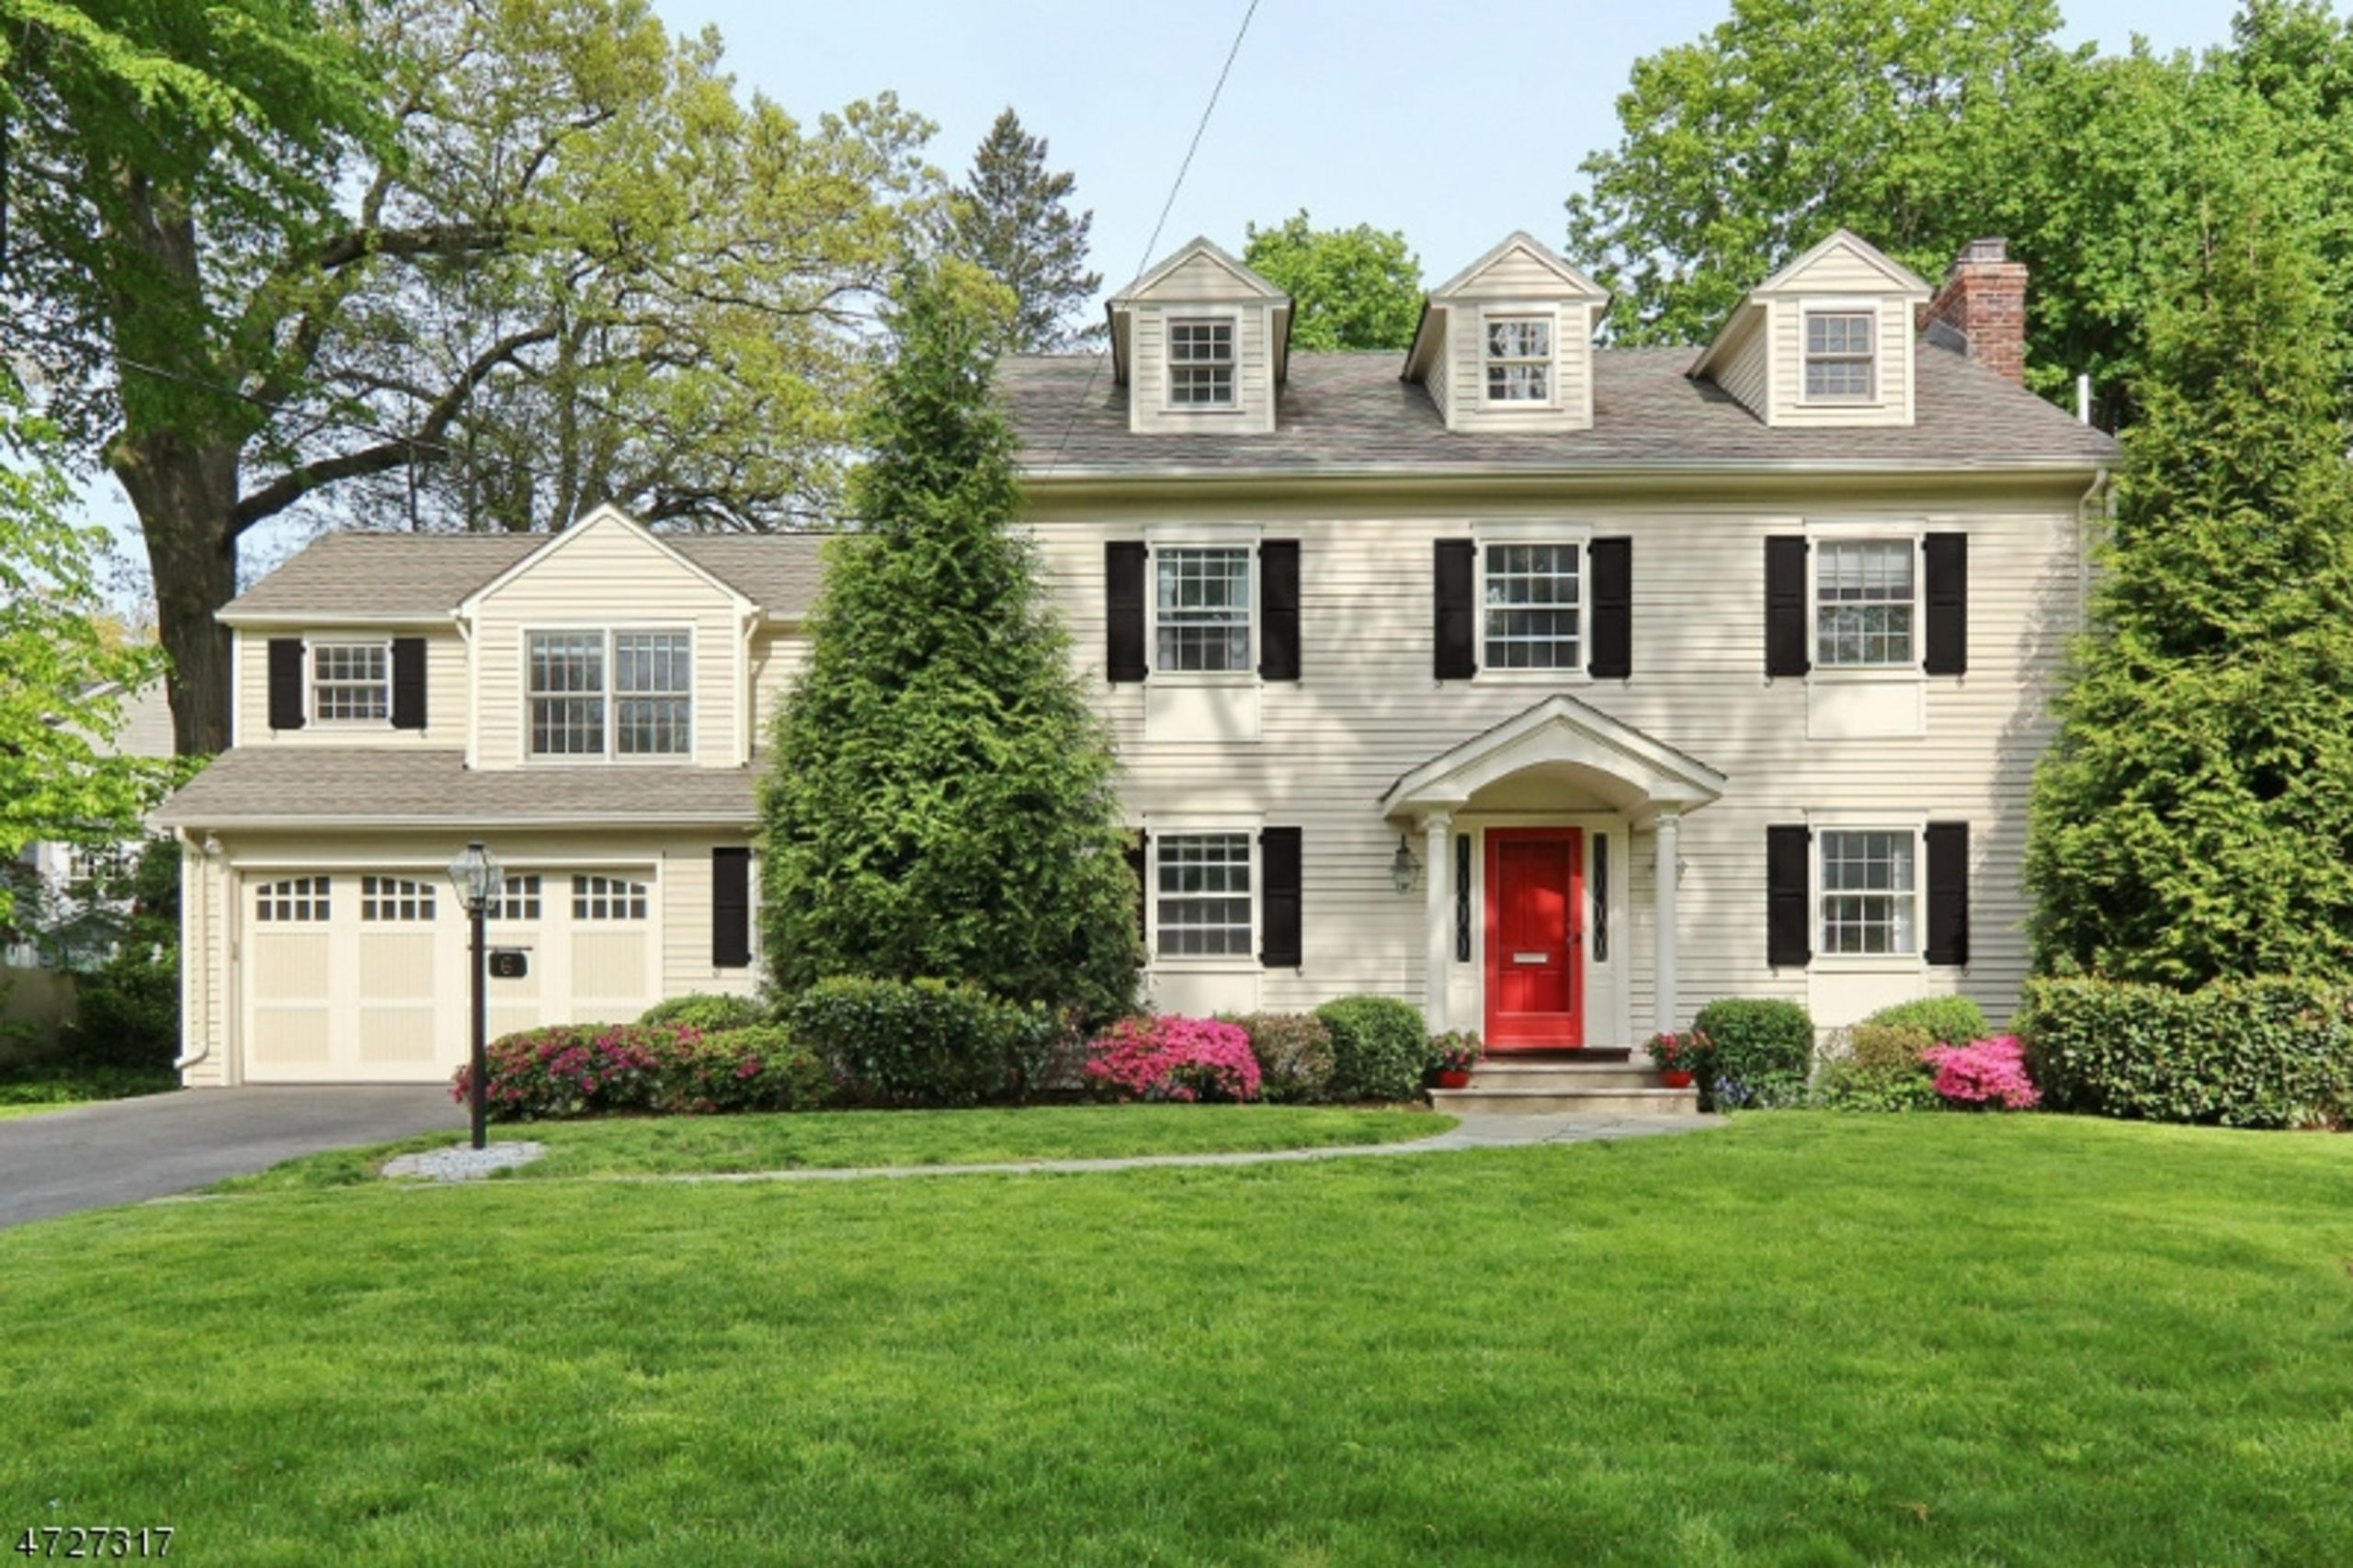 JUST LISTED 81 Rector Street, Millburn, NJ